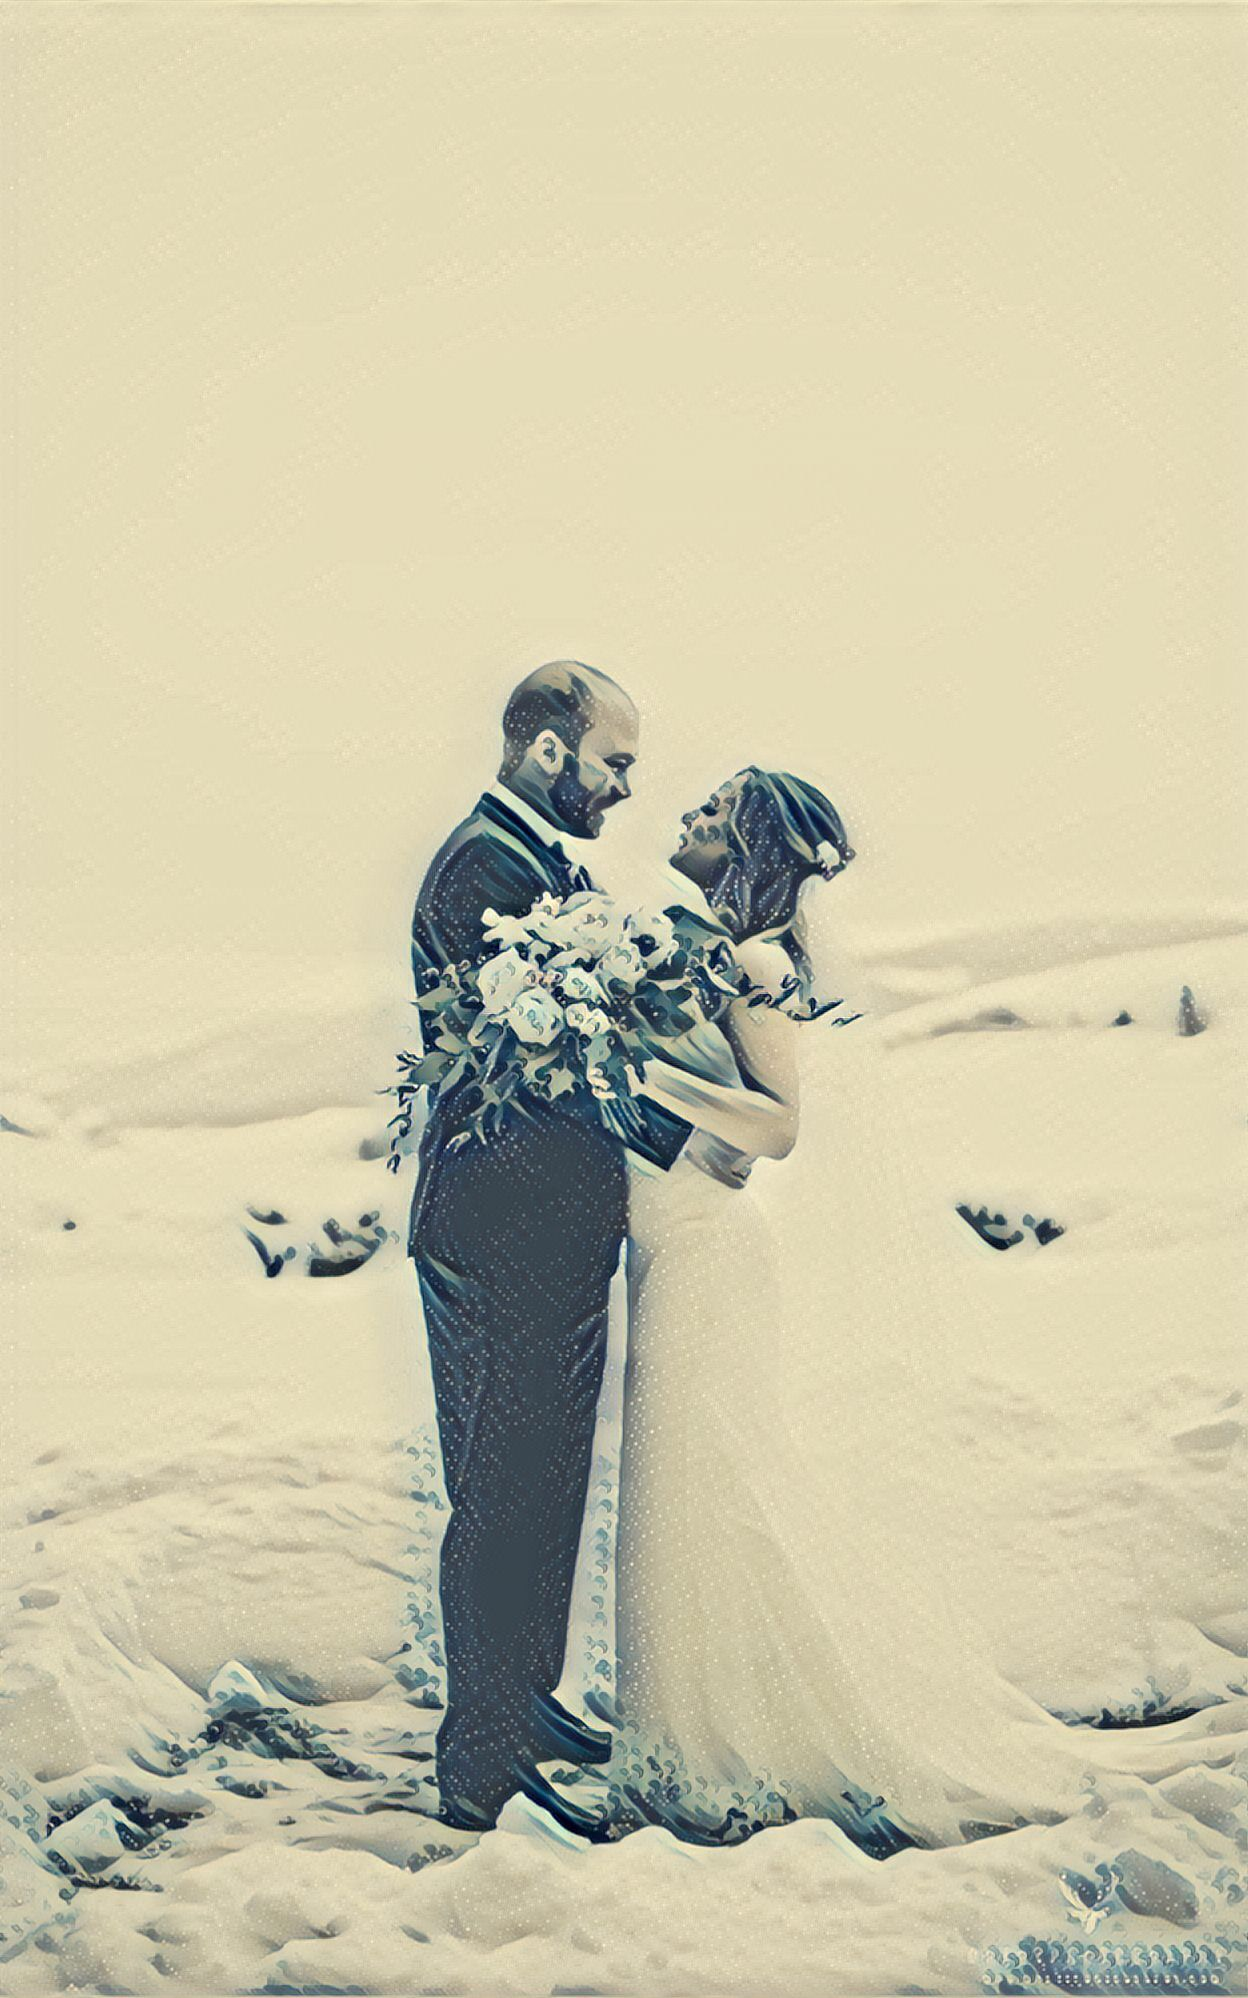 The New Years Wedding at Lone Pine Ranch Sampler - Draht Photography